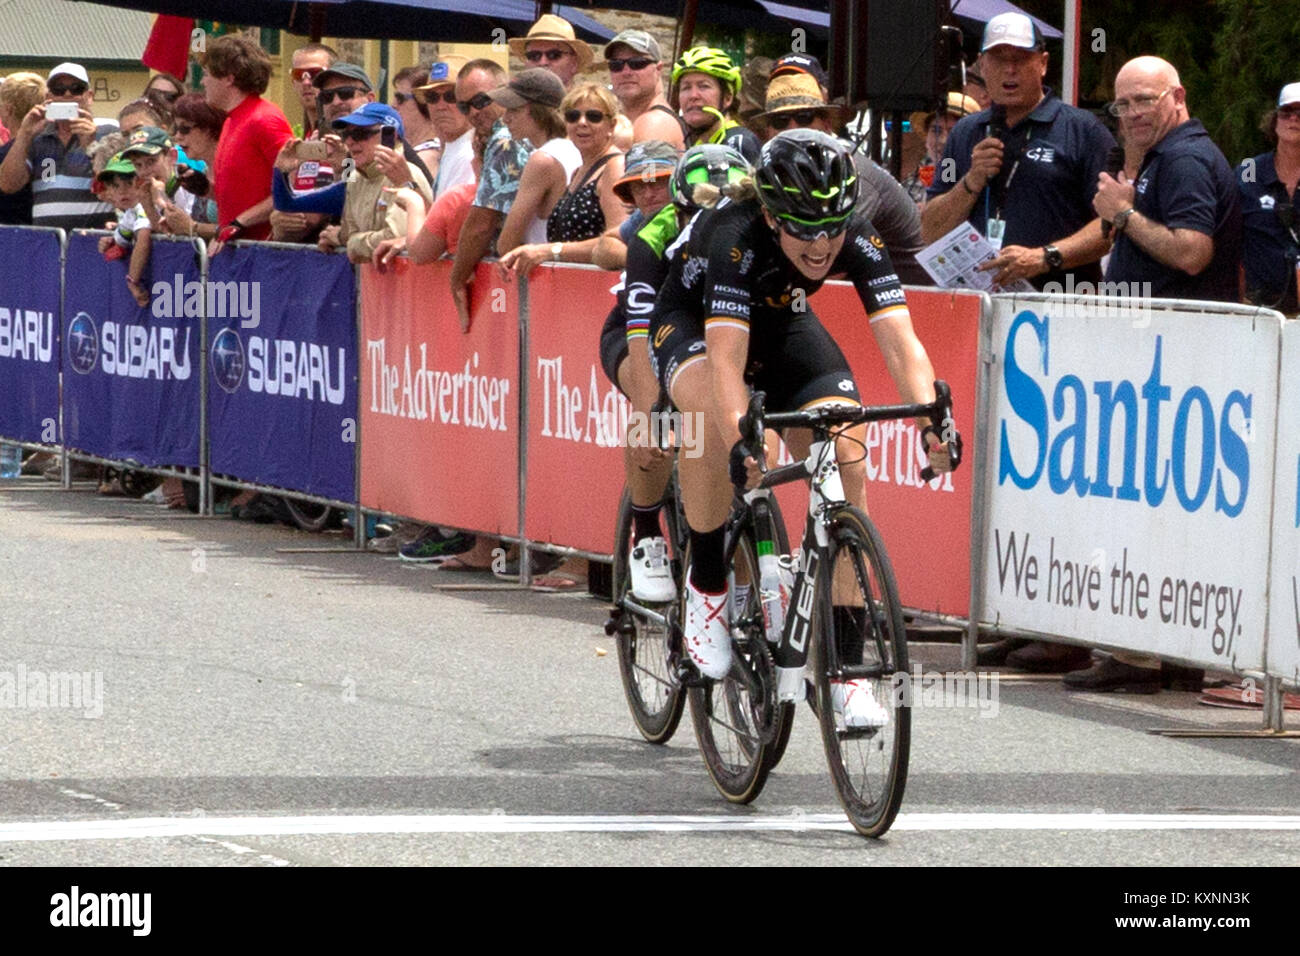 Adelaide, Australia. 11th Jan, 2018. Annette Edmondson wins stage 1 of the Womens Tour Down Under in Gumeracha. - Stock Image